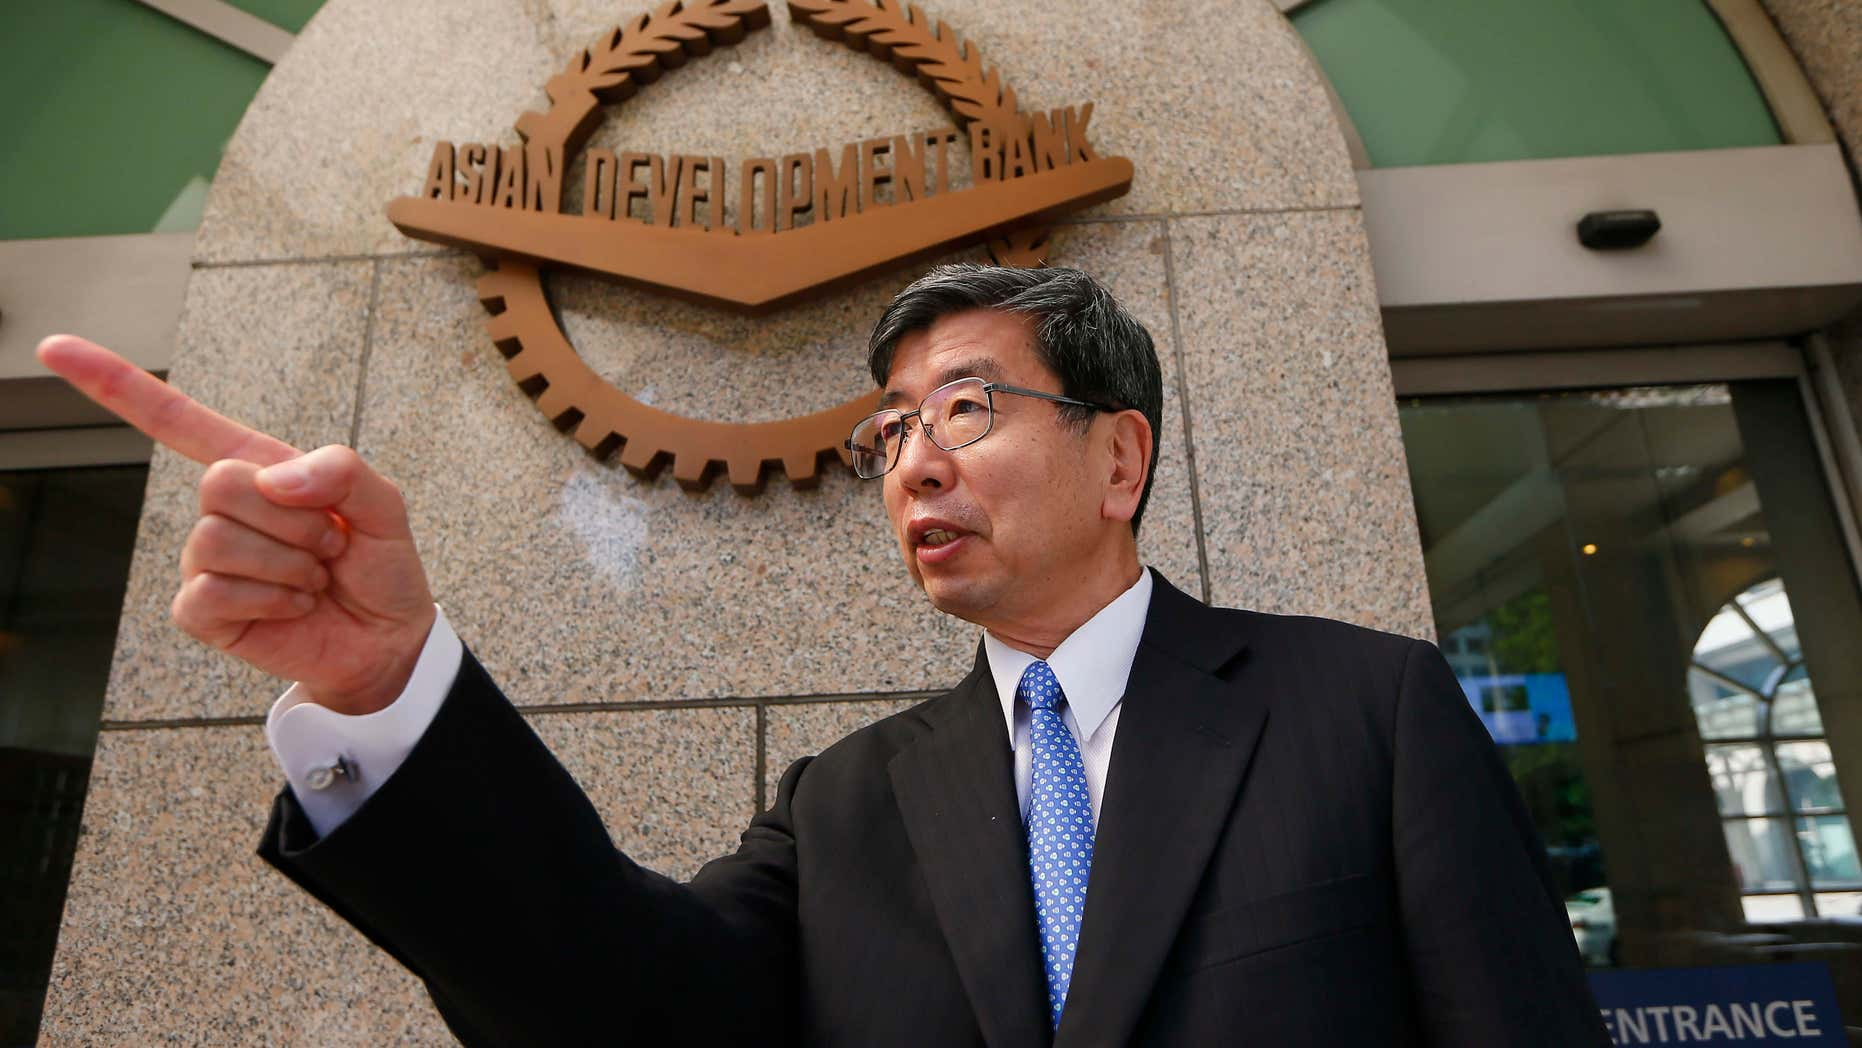 Jan. 8, 2016: Asian Development Bank President Takehiko Nakao gestures to an aide in front of the logo at the financial institution's headquarters following a forum with foreign correspondents based in the Philippines at suburban Mandaluyong city east of Manila, Philippines.